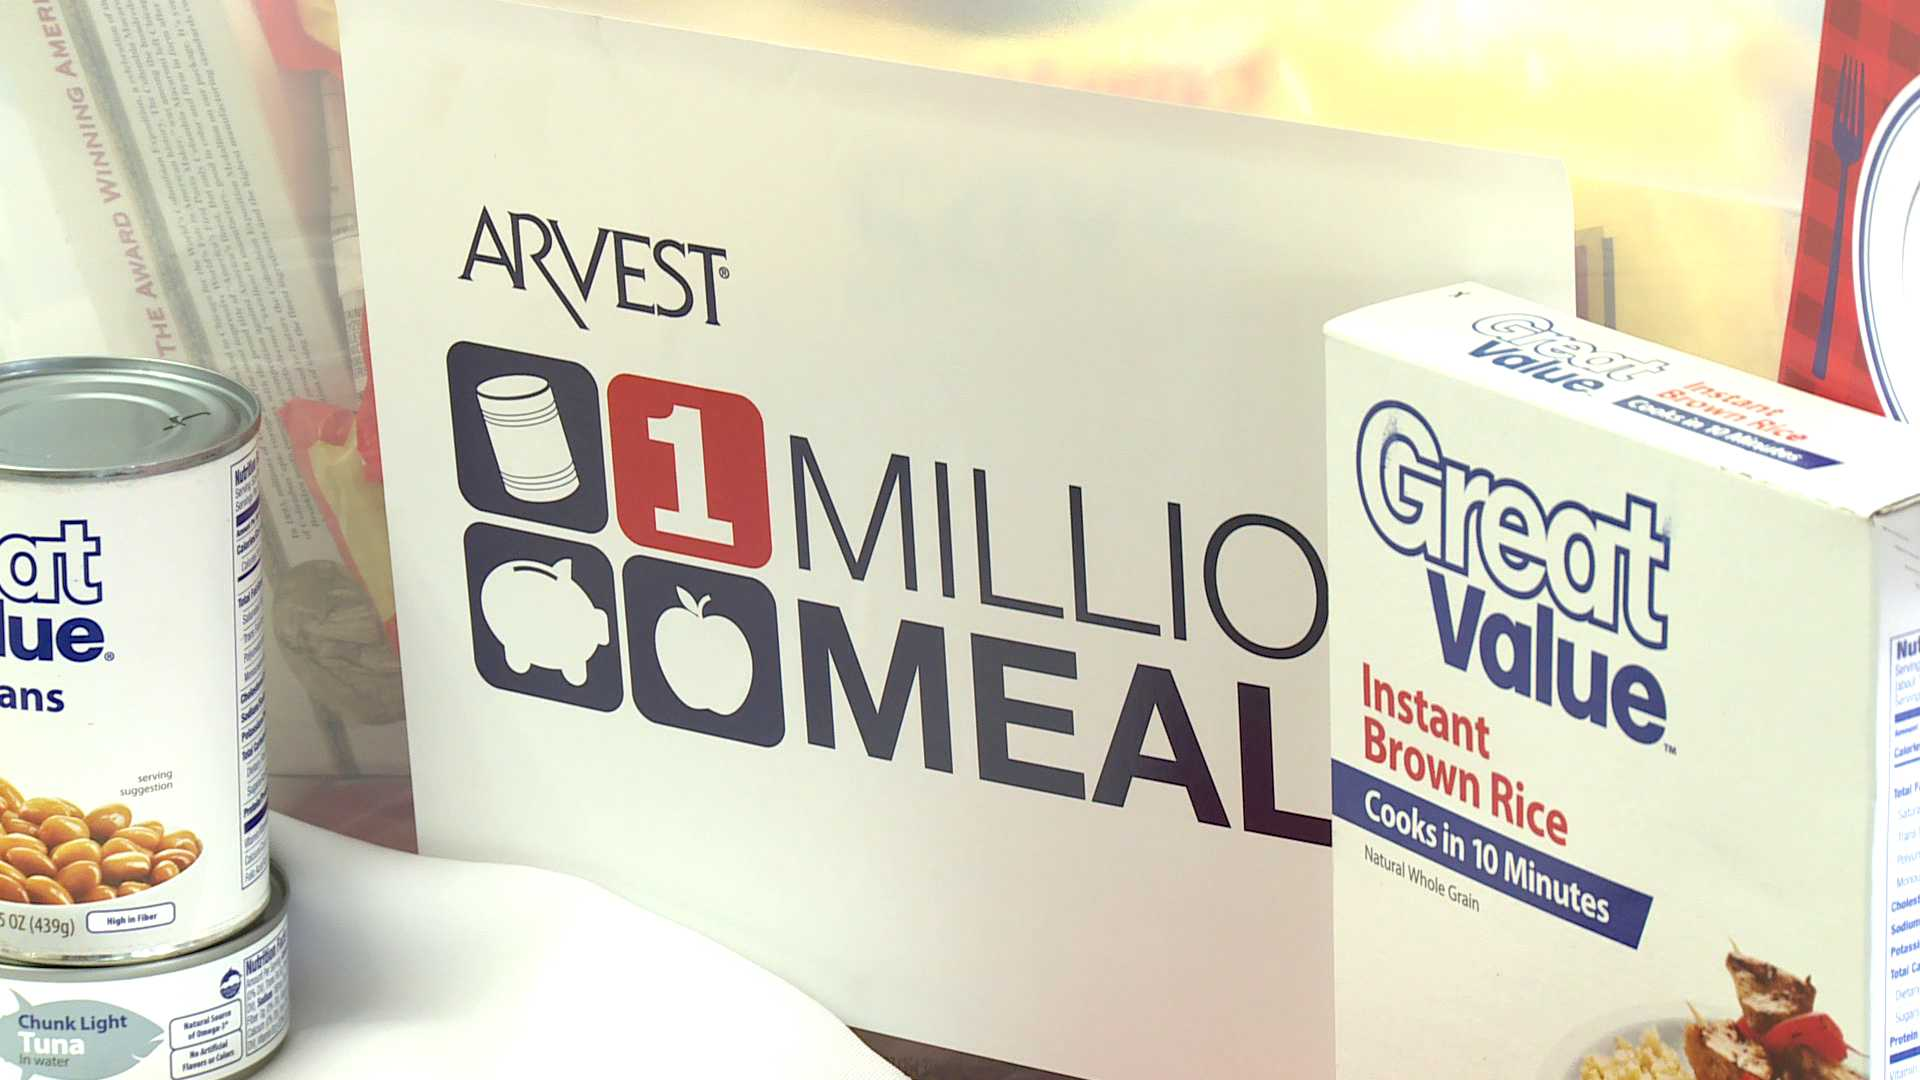 Arvest one million